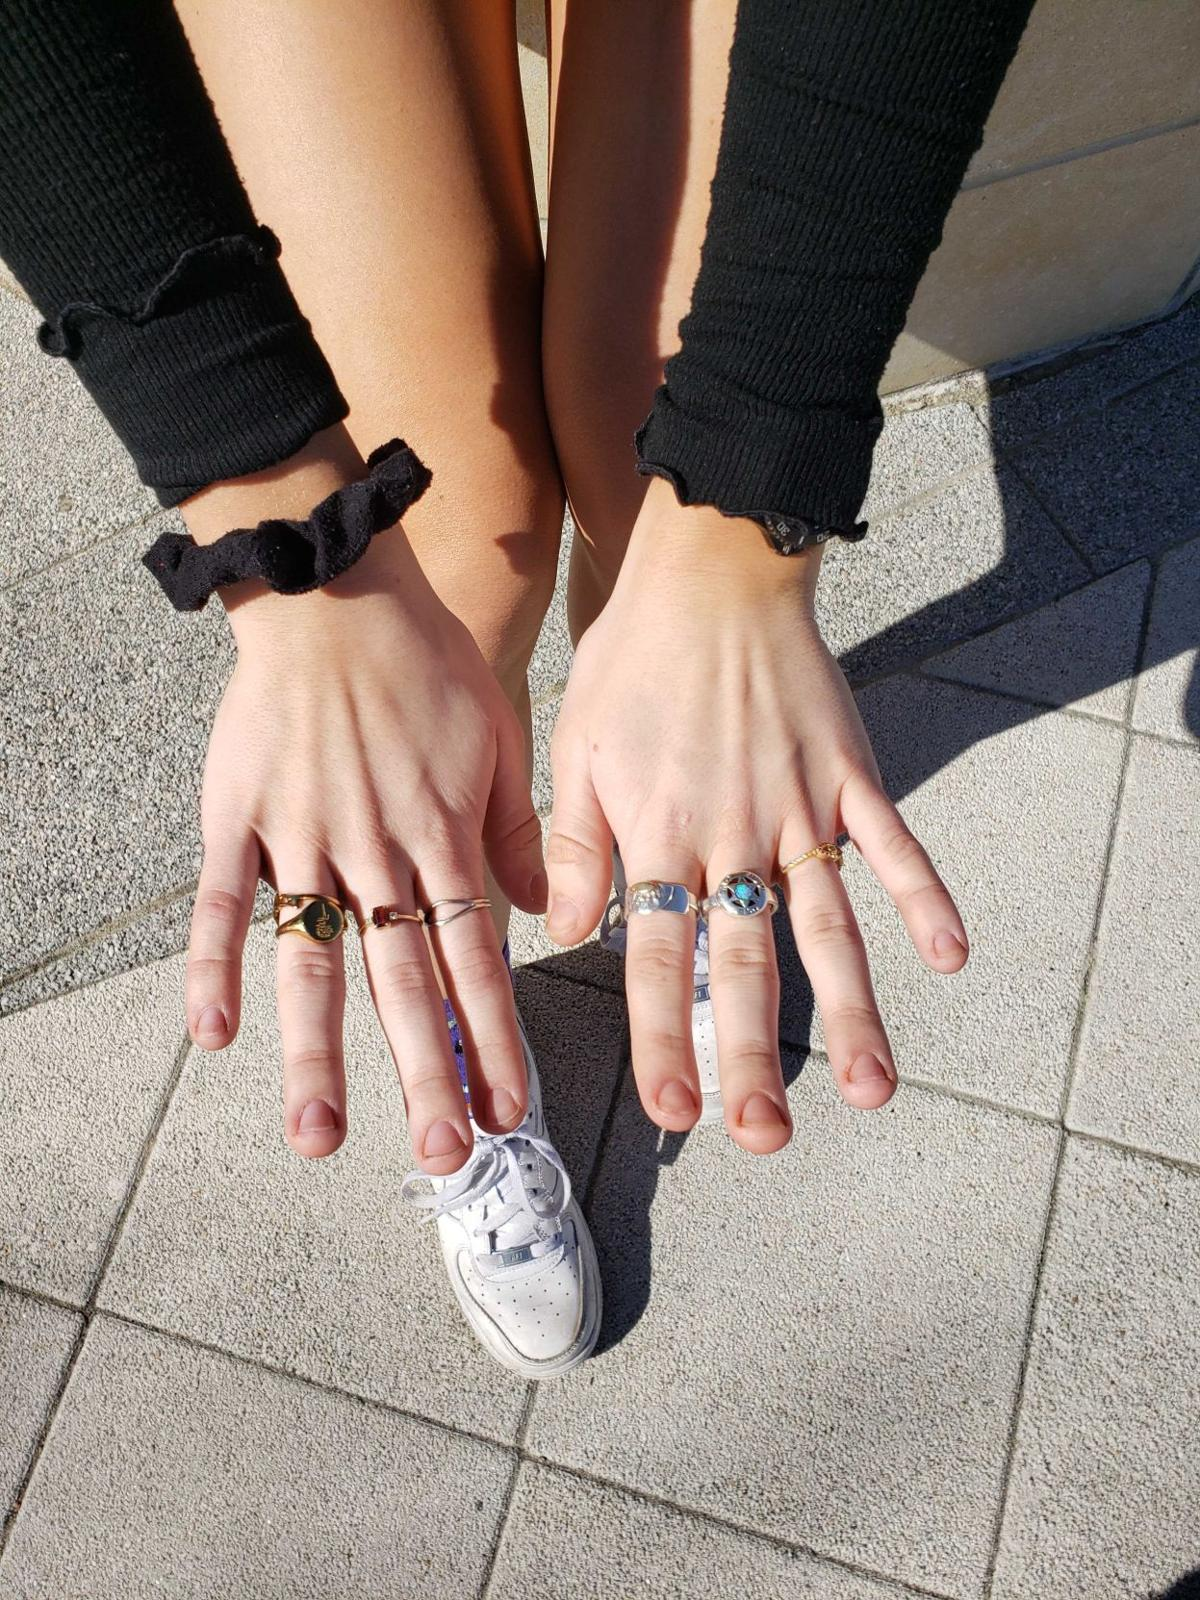 A woman displays several rings on her fingers